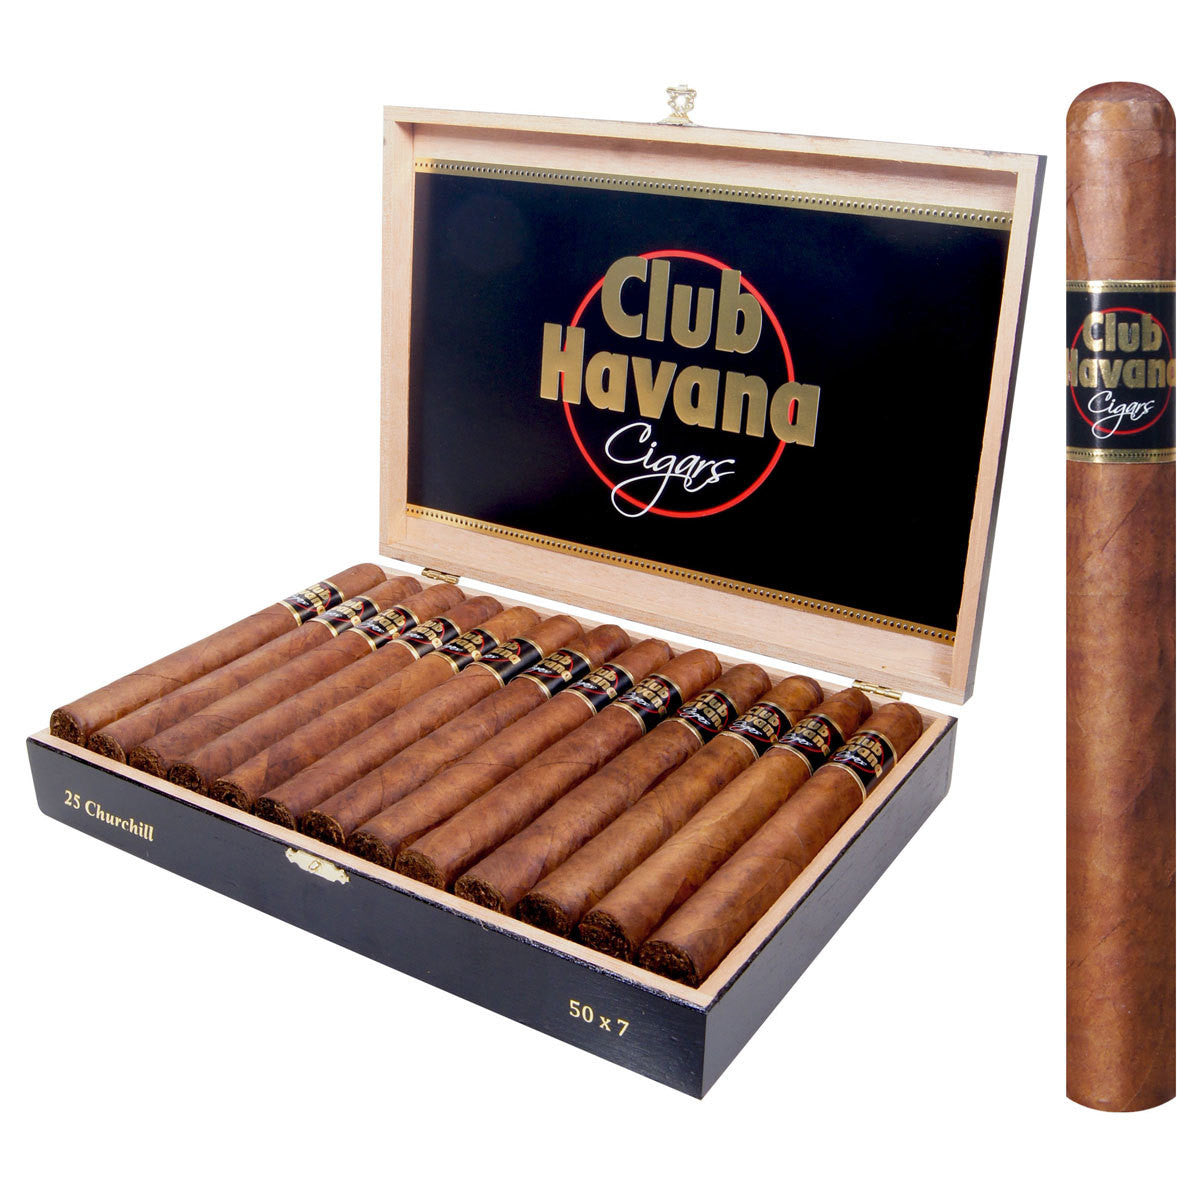 Club Havana Cigars Box of 25 - Cigar boulevard